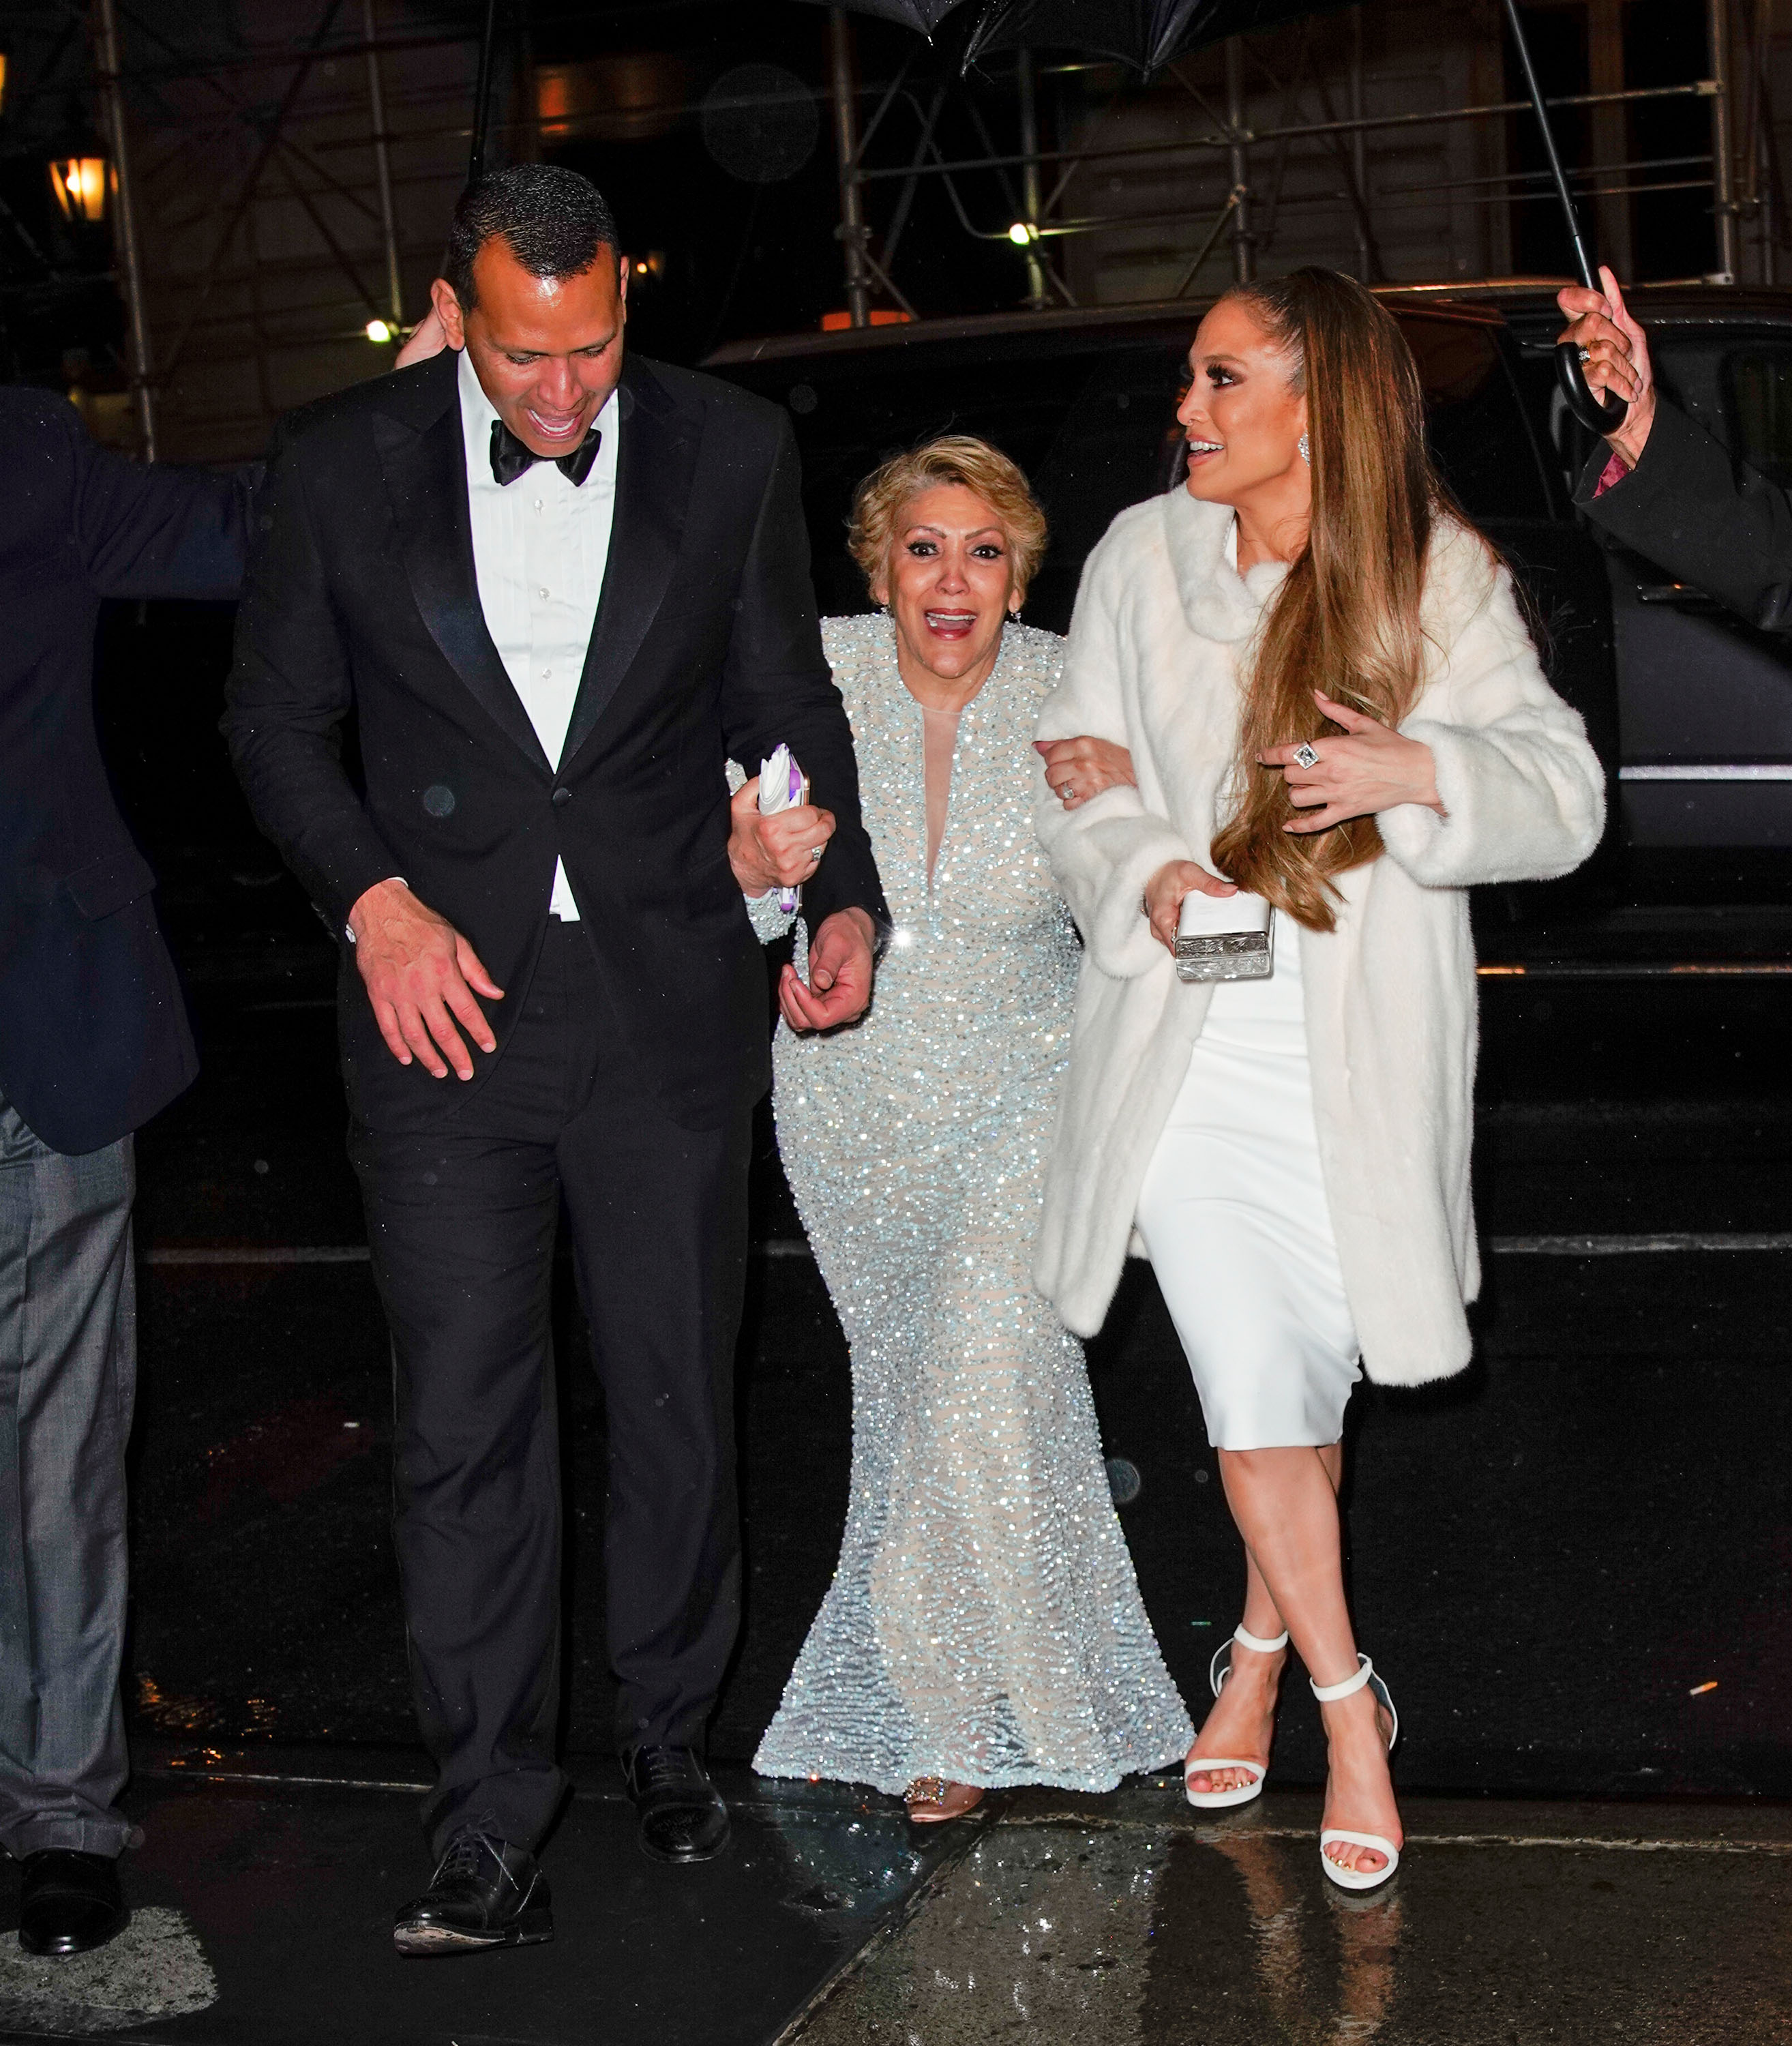 Jennifer Lopez, Alex Rodriguez, and Jennifer's mother Guadalupe head to the Time 100 Afterparty arm-in-arm in New York <P> Pictured: Jennifer Lopez, Alex Rodriguez, Guadalupe Rodriguez <B>Ref: SPL1687585  250418  </B><BR/> Picture by: Jackson Lee / Splash News<BR/> </P><P> <B>Splash News and Pictures</B><BR/> Los Angeles:310-821-2666<BR/> New York:212-619-2666<BR/> London:870-934-2666<BR/> <span id=